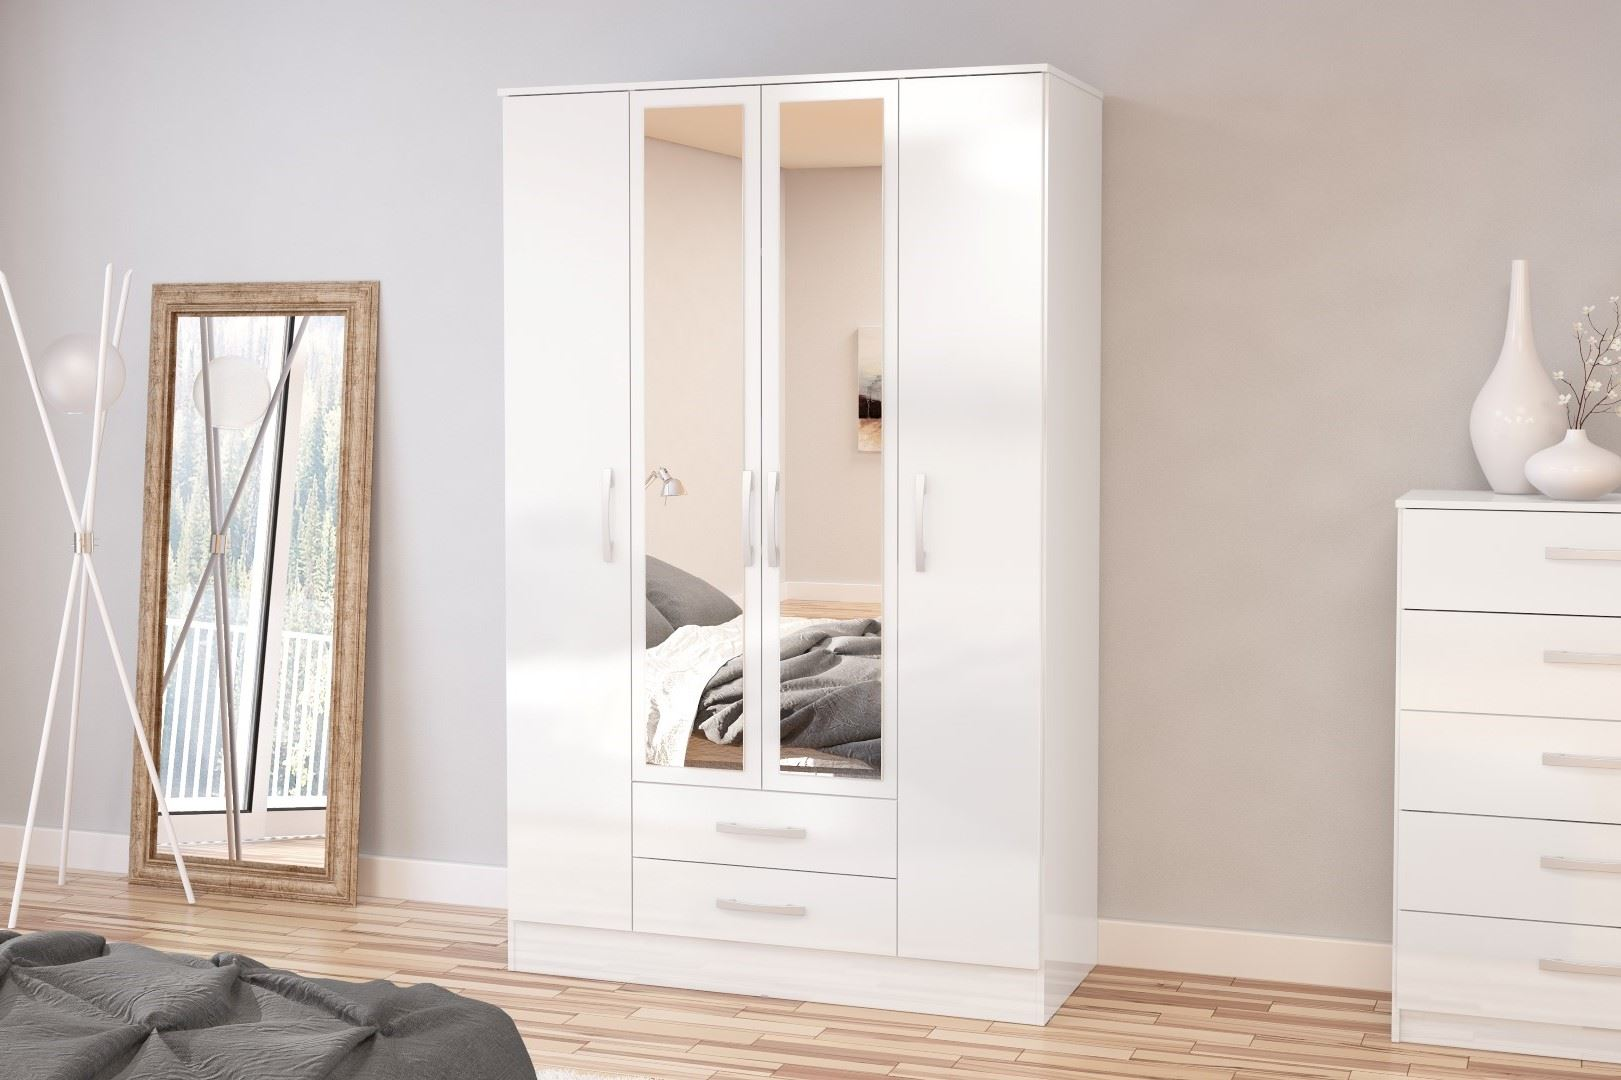 Birlea Lynx High Gloss All White 4 door Mirror 2 drawer bedroom wardrobe new